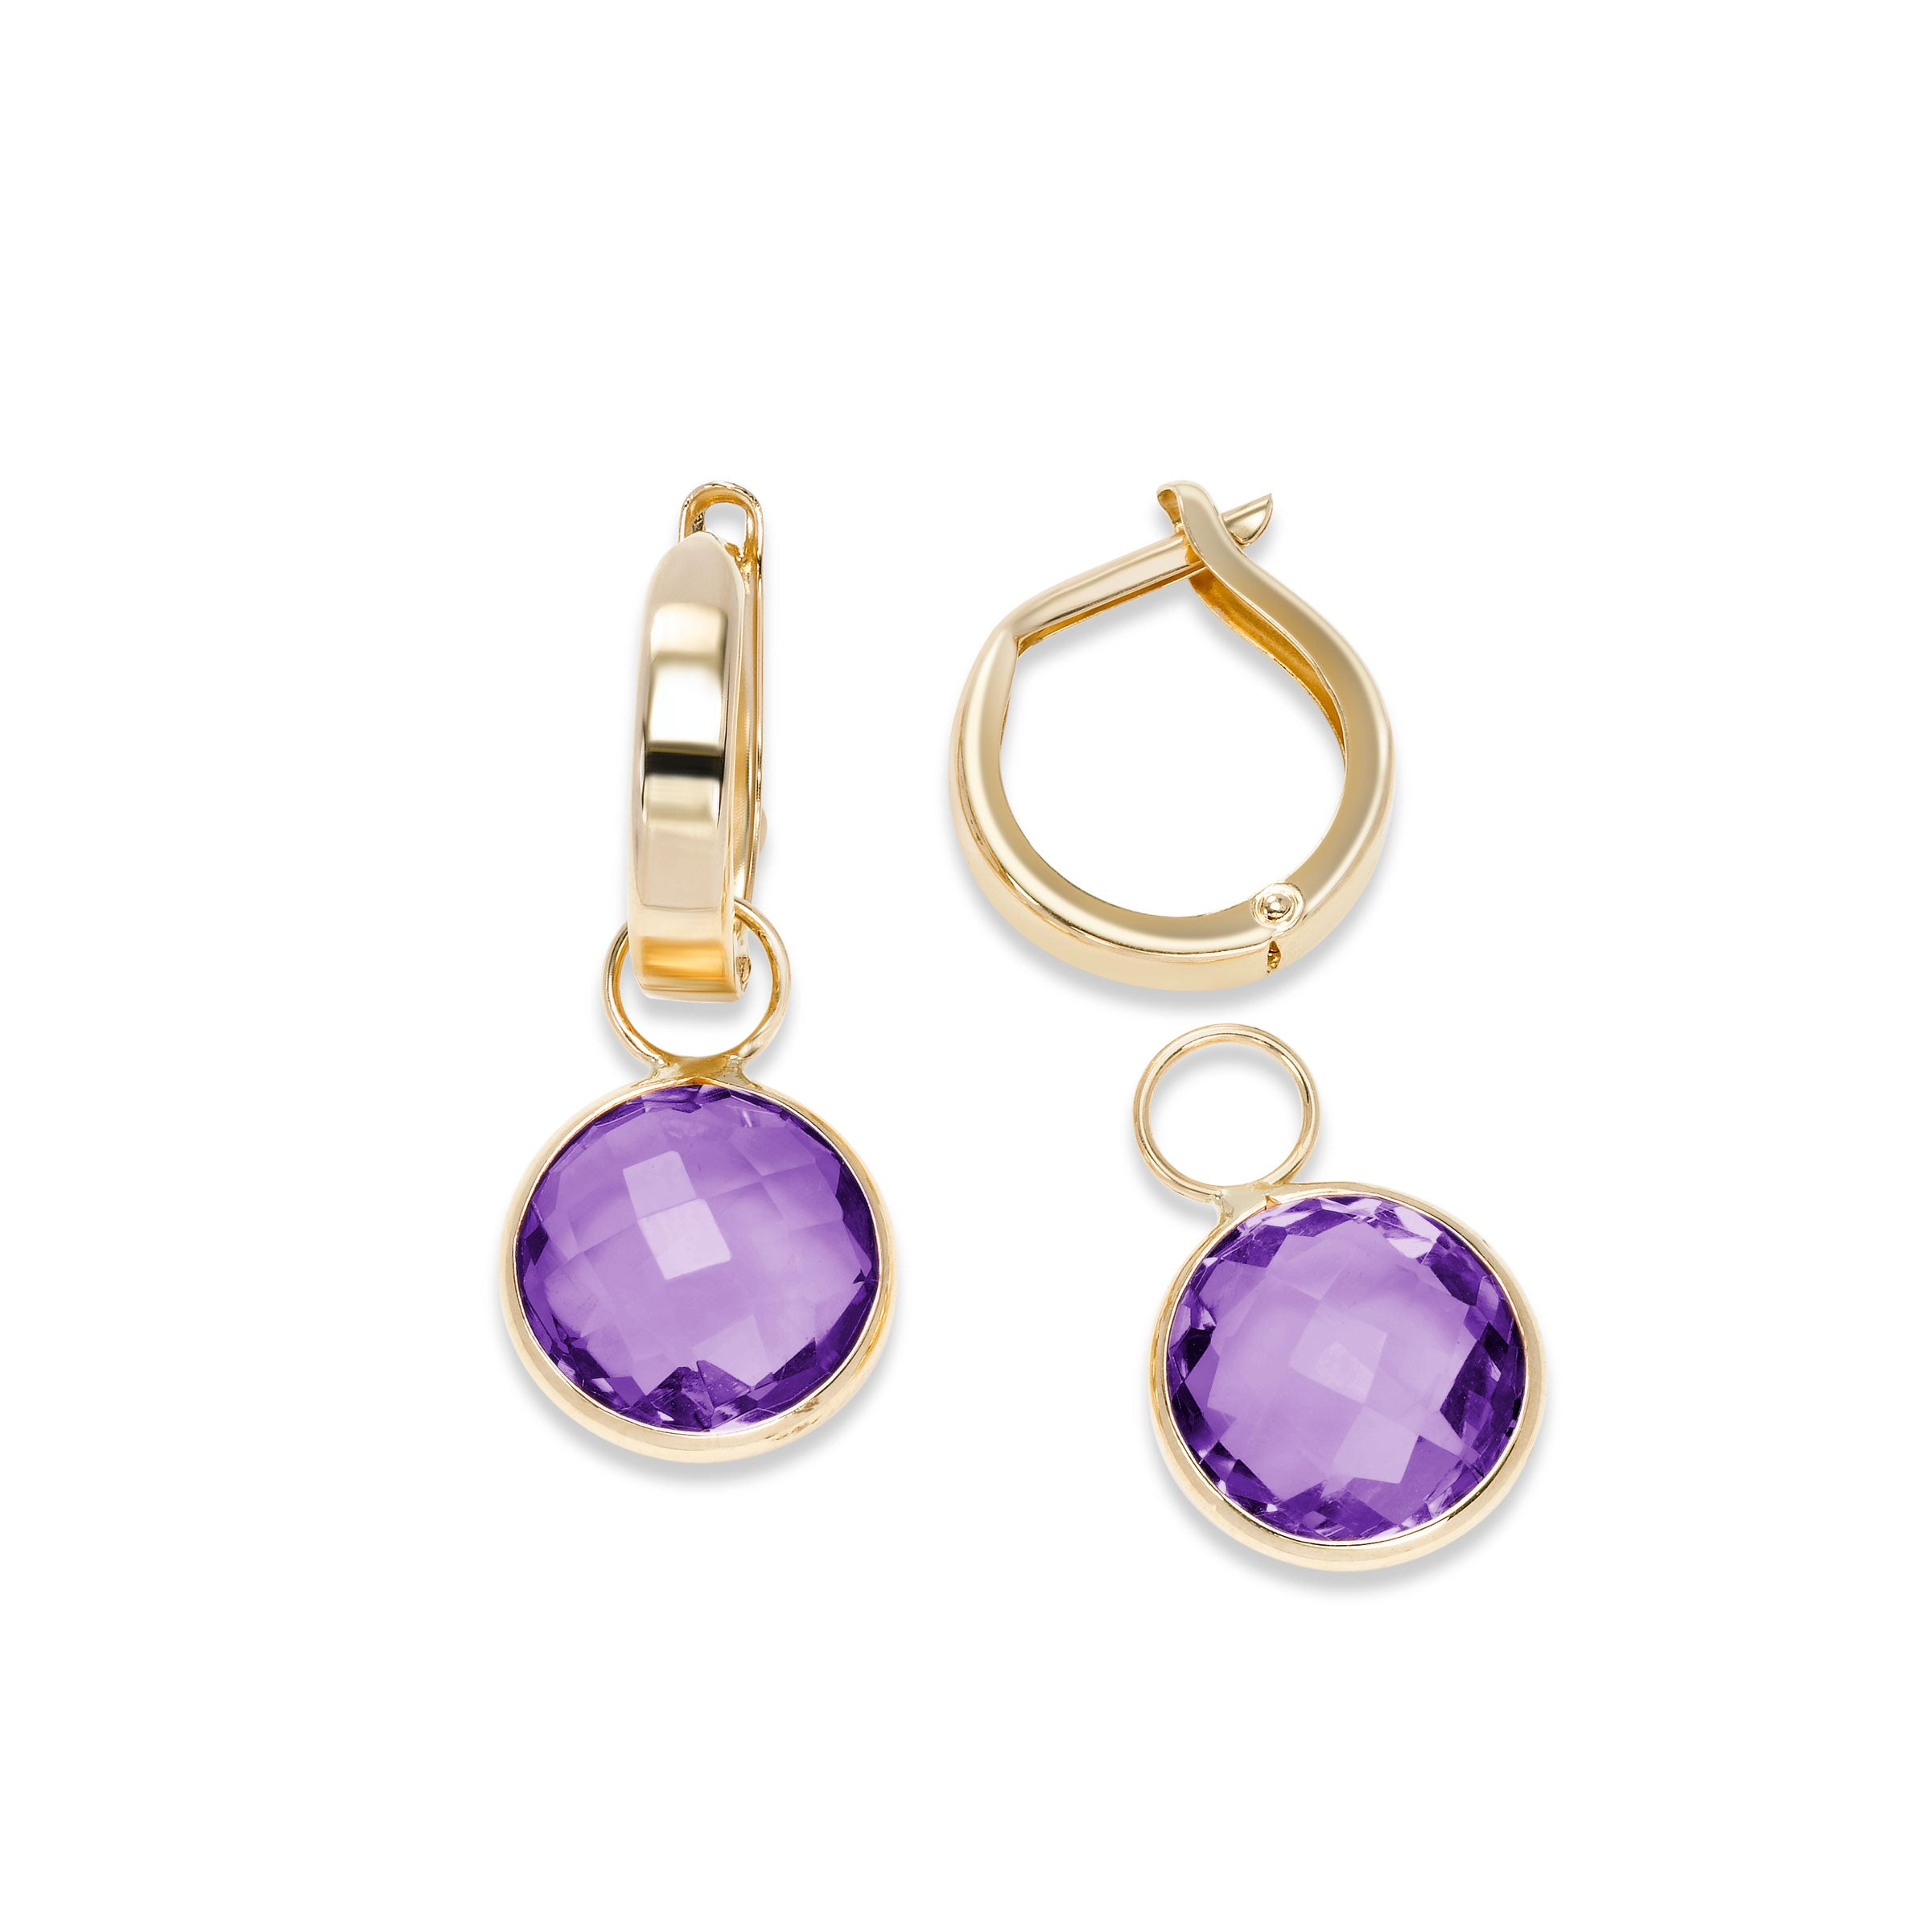 Hoop Earrings with Detachable Amethyst Dangles, 14K Yellow Gold